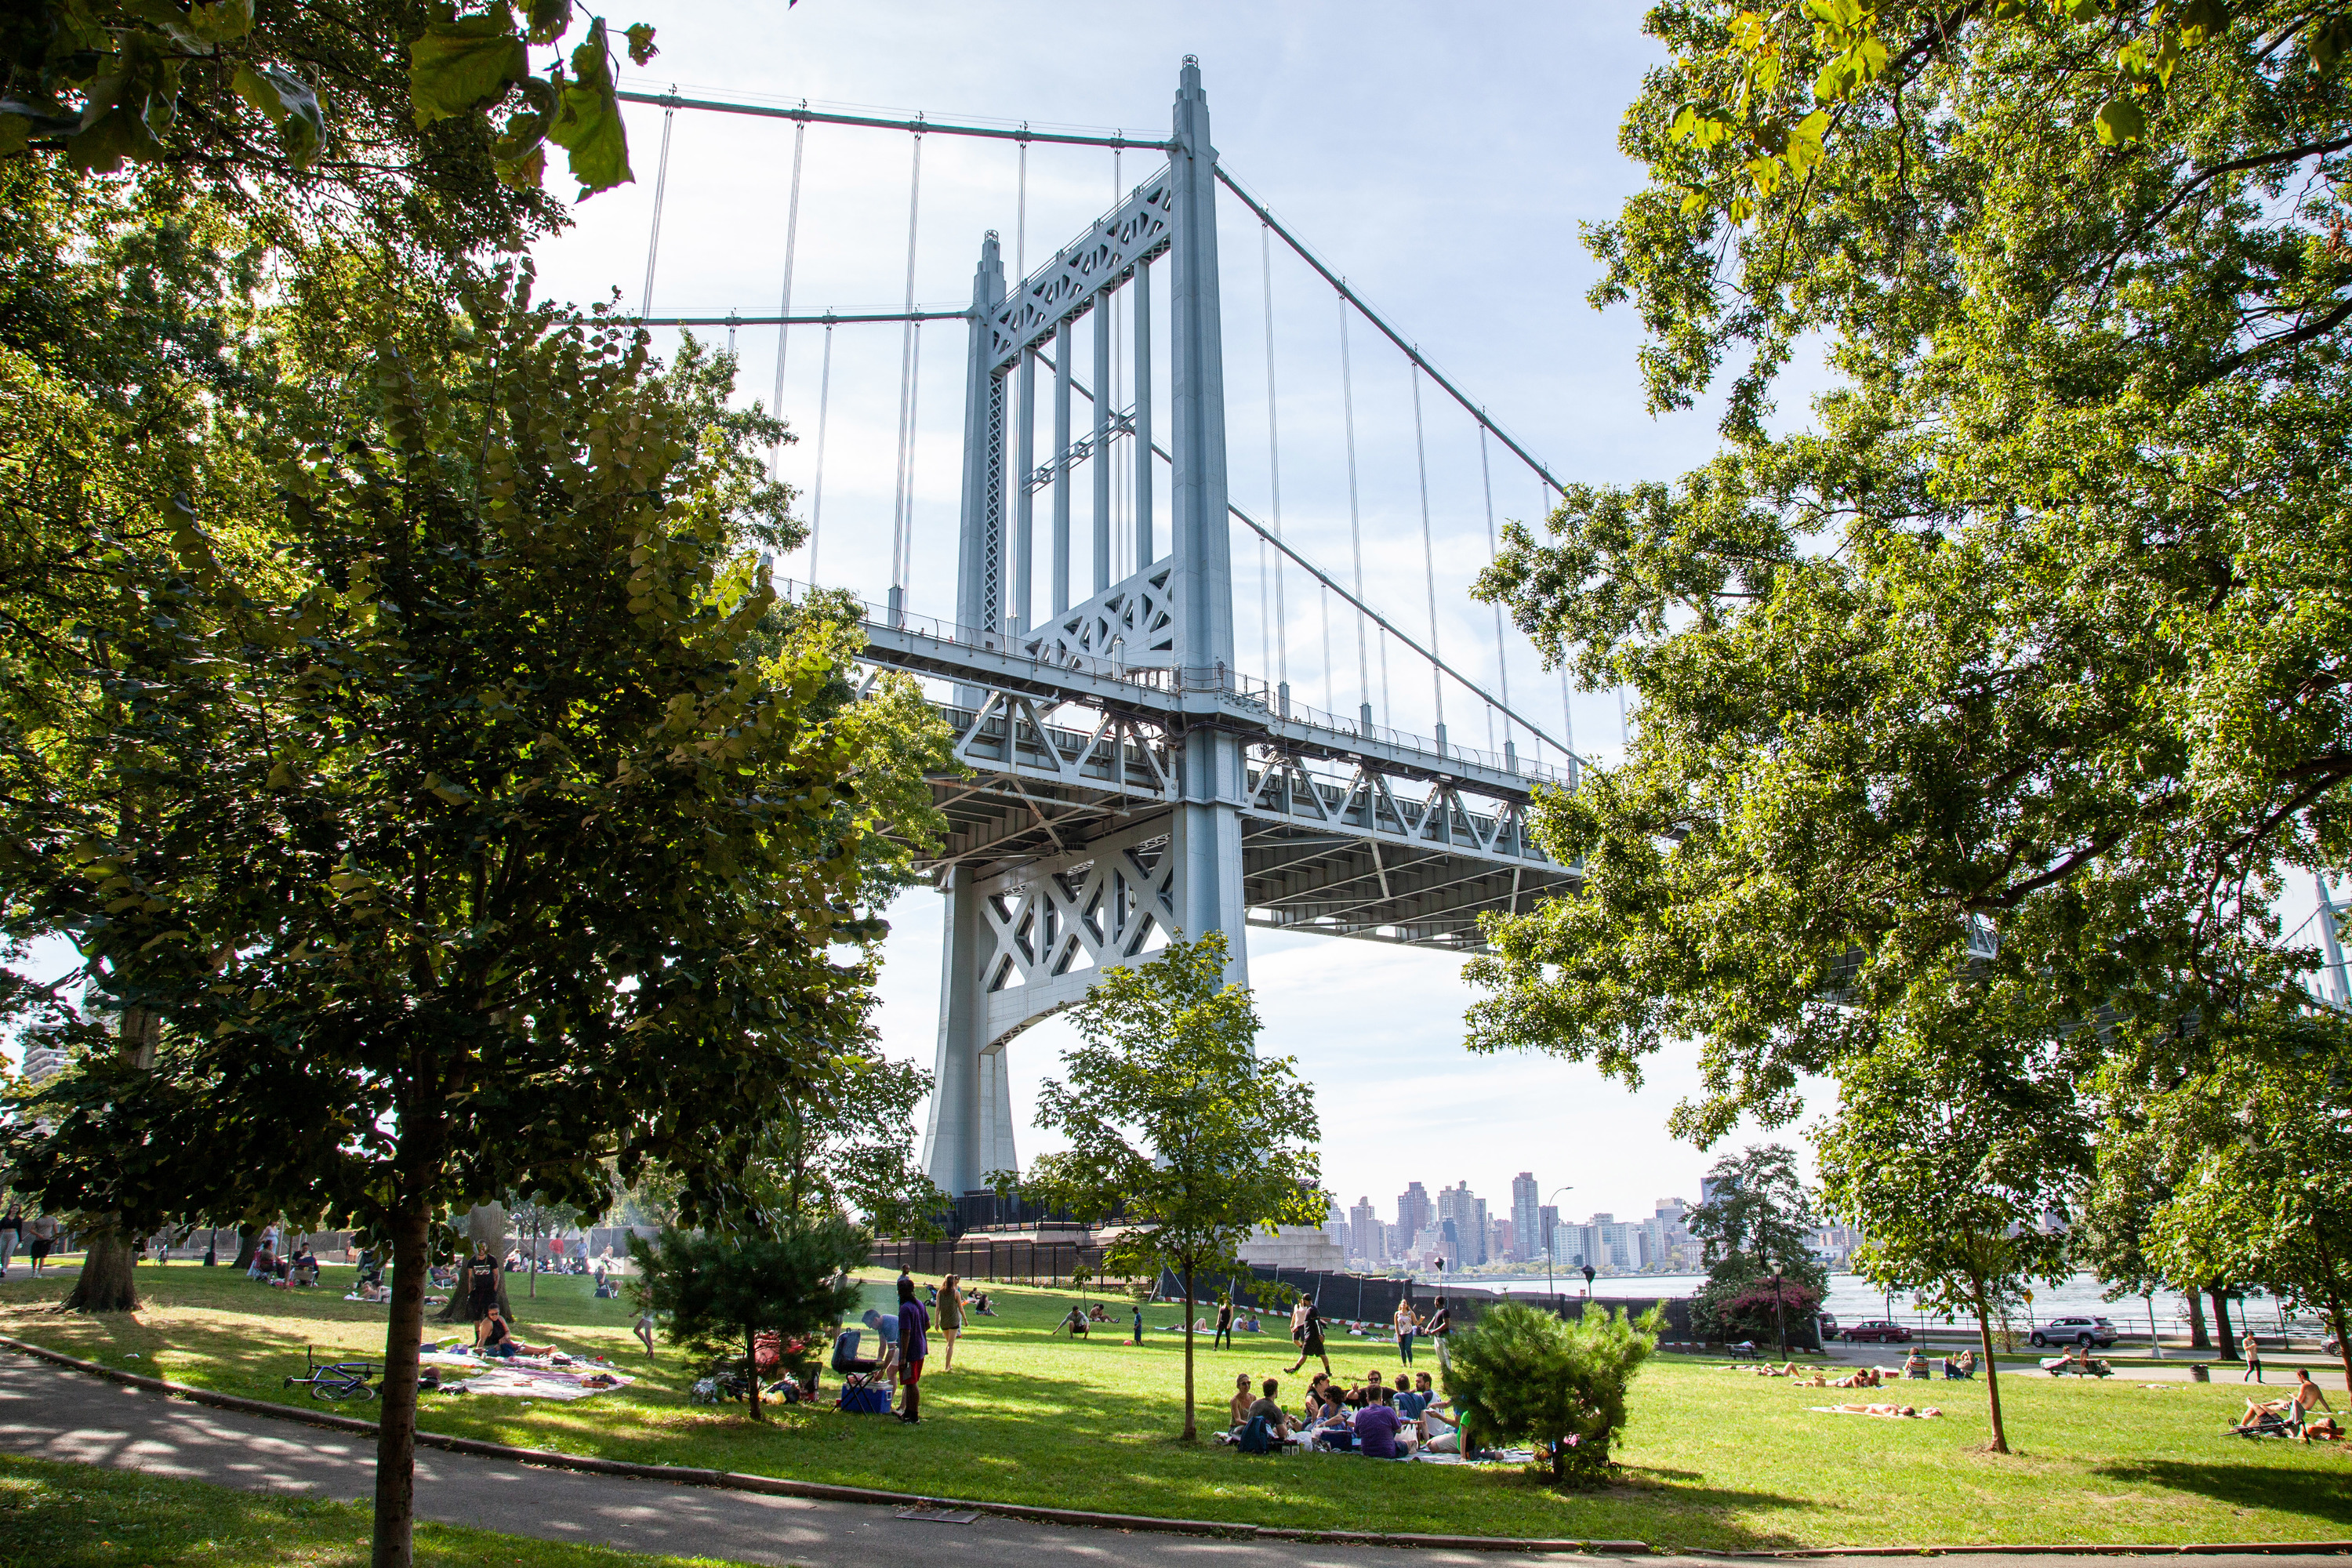 Best things to do in Astoria